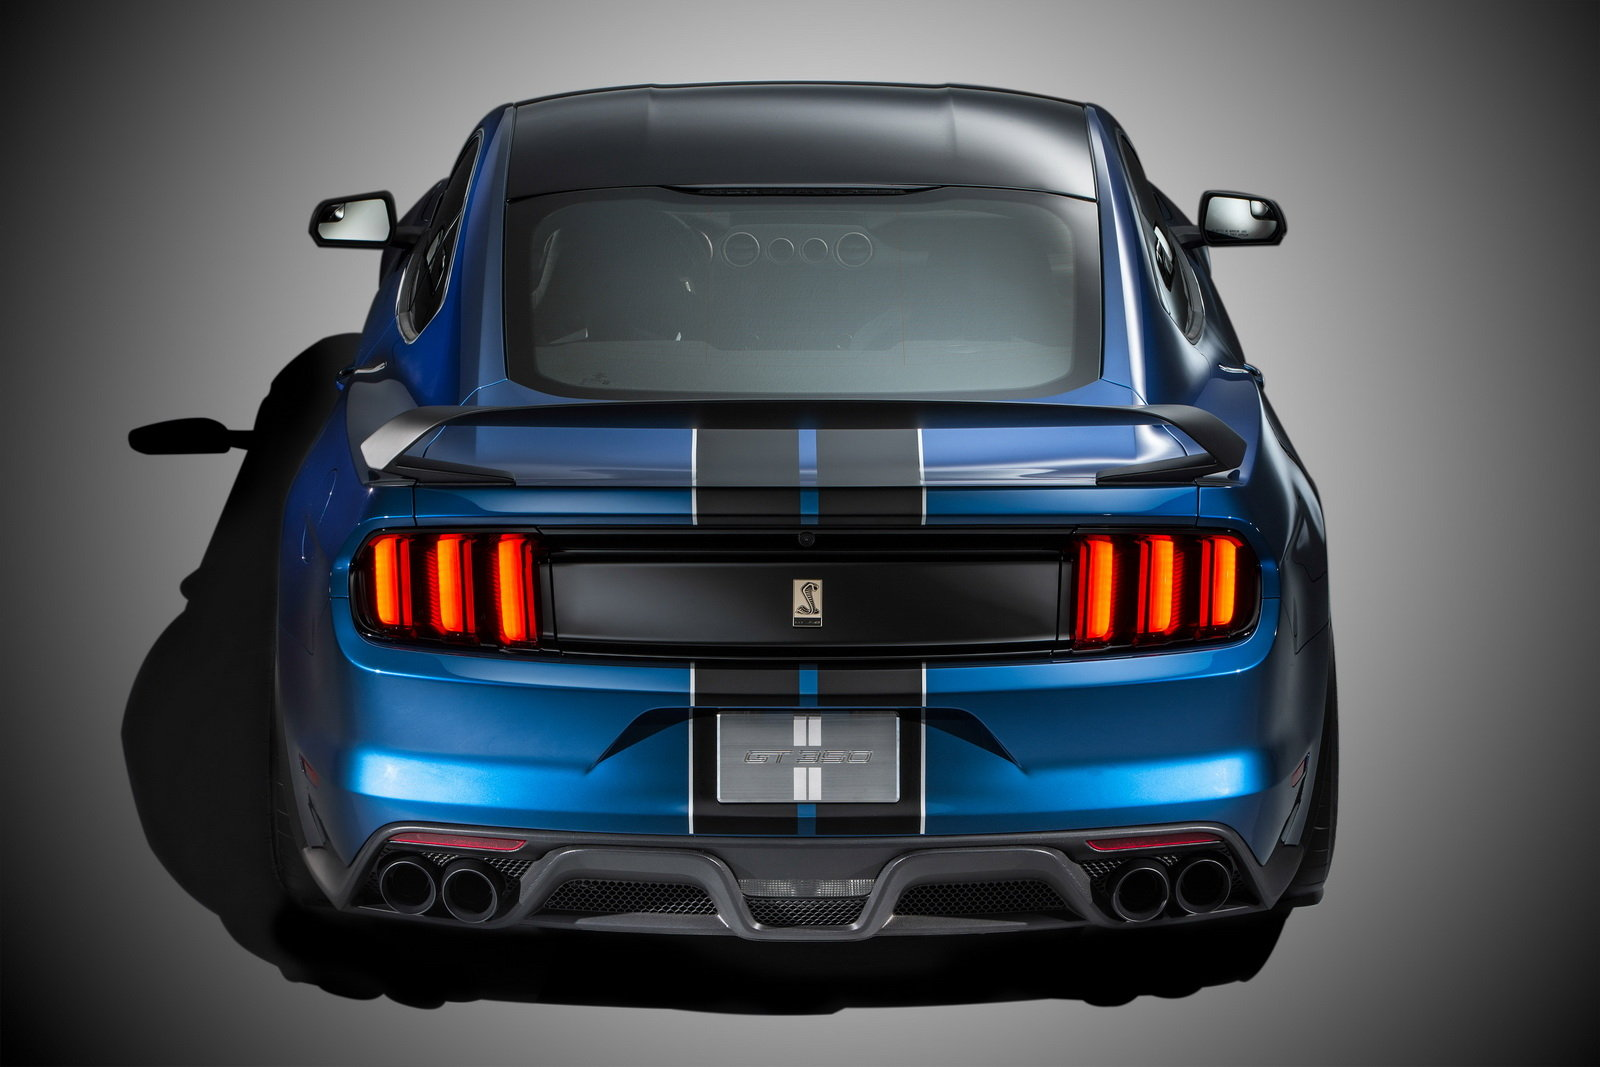 2016 Ford Mustang Shelby Gt350r Rear Exterior (Photo 35 of 47)